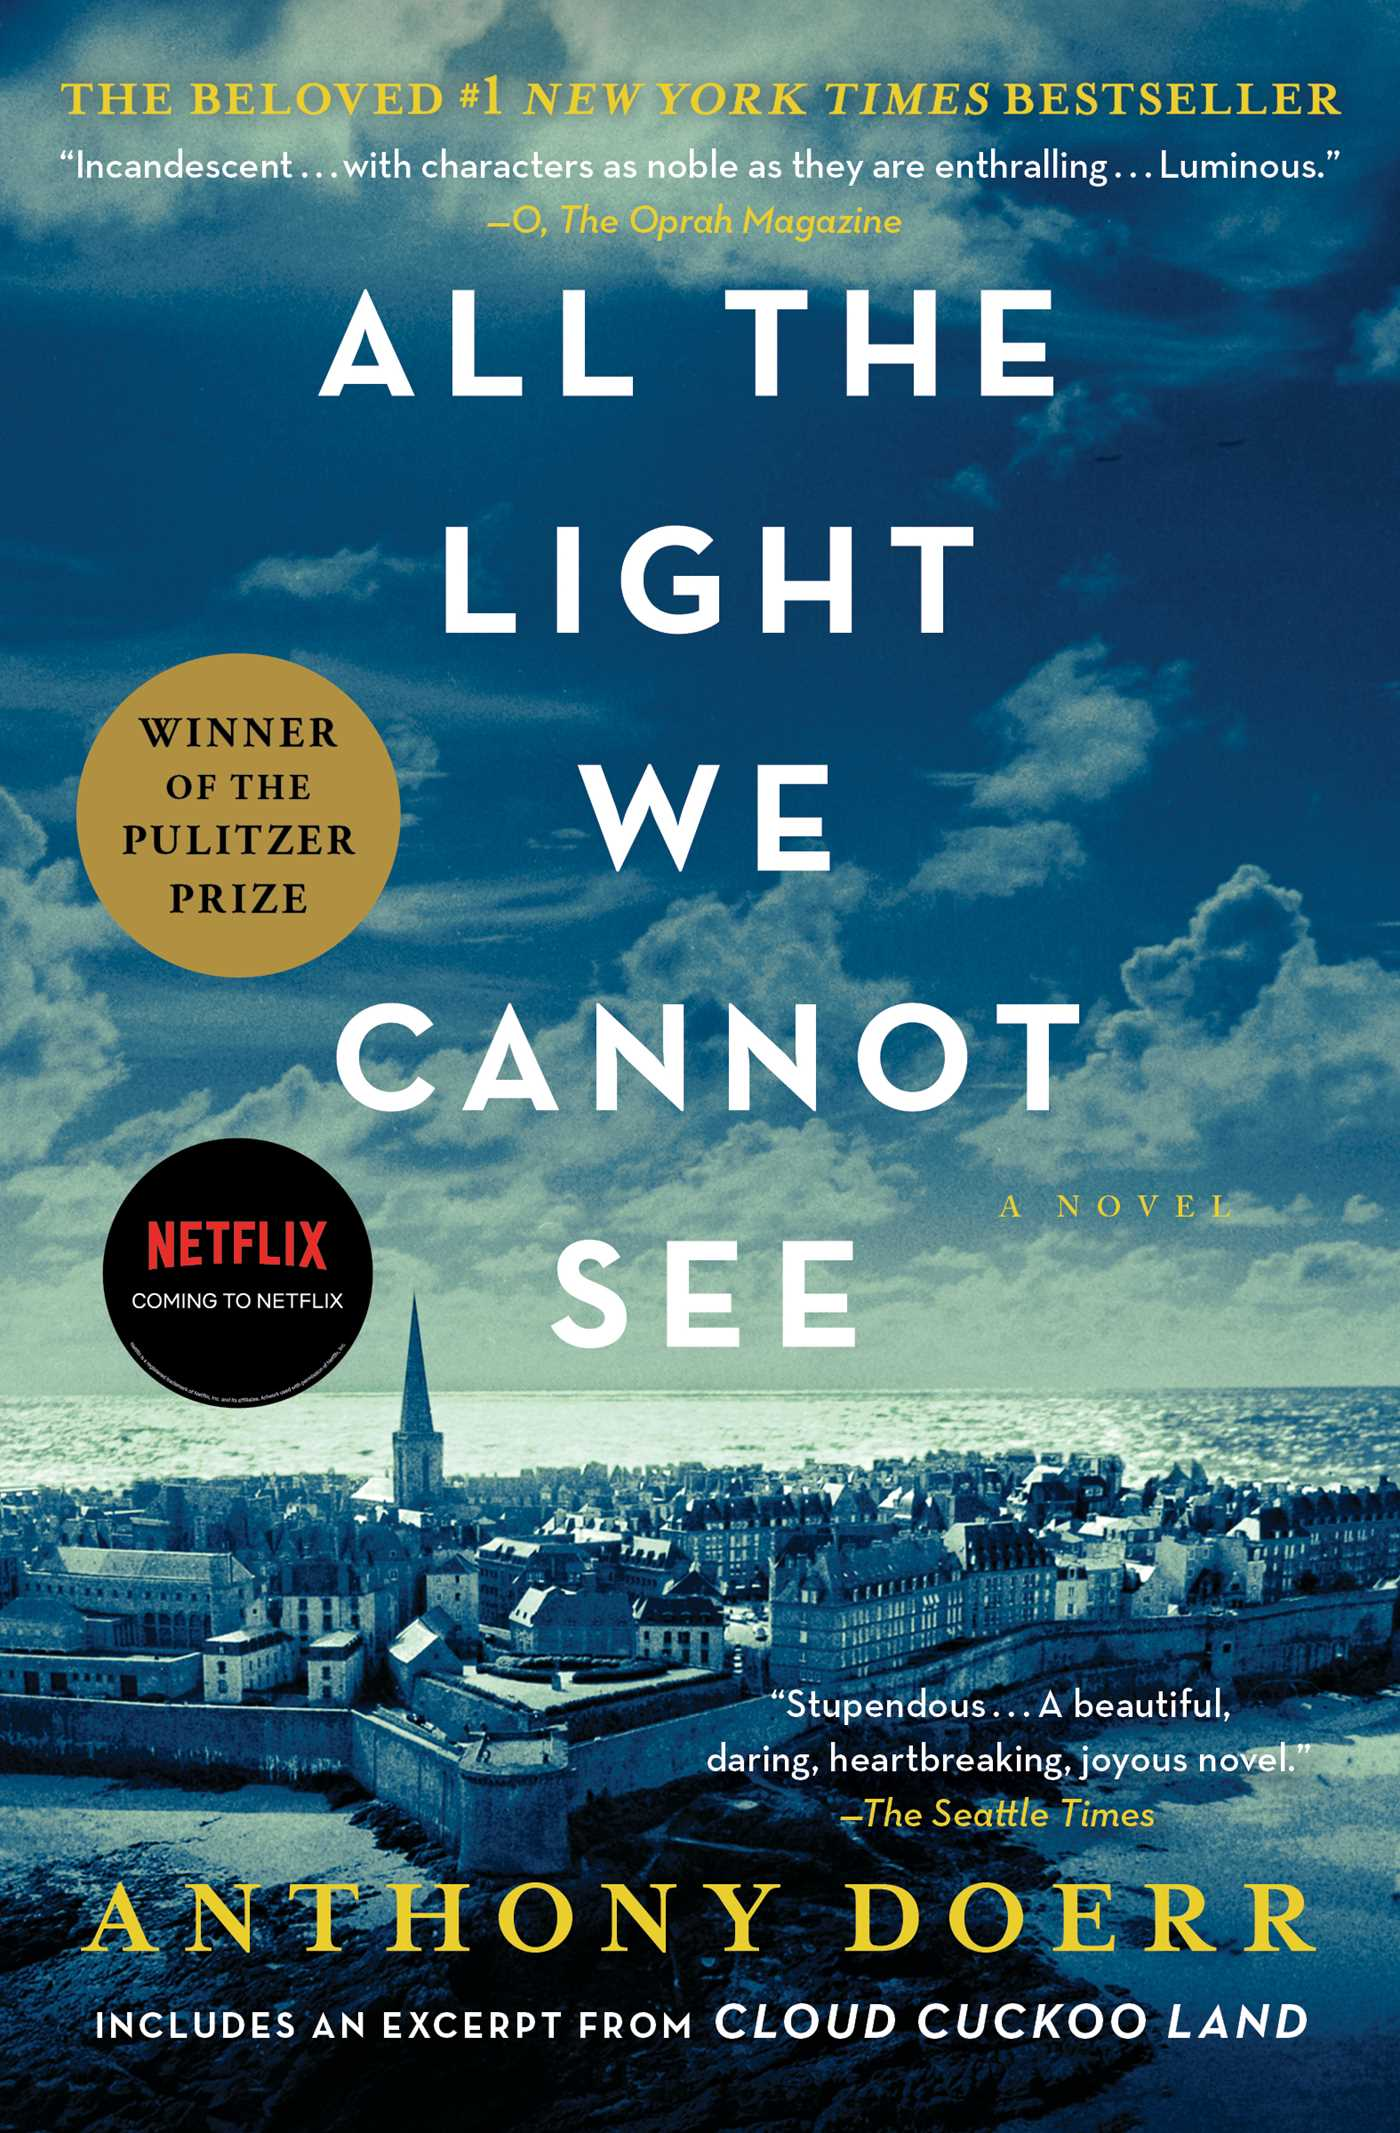 All-the-light-we-cannot-see-9781476746609_hr